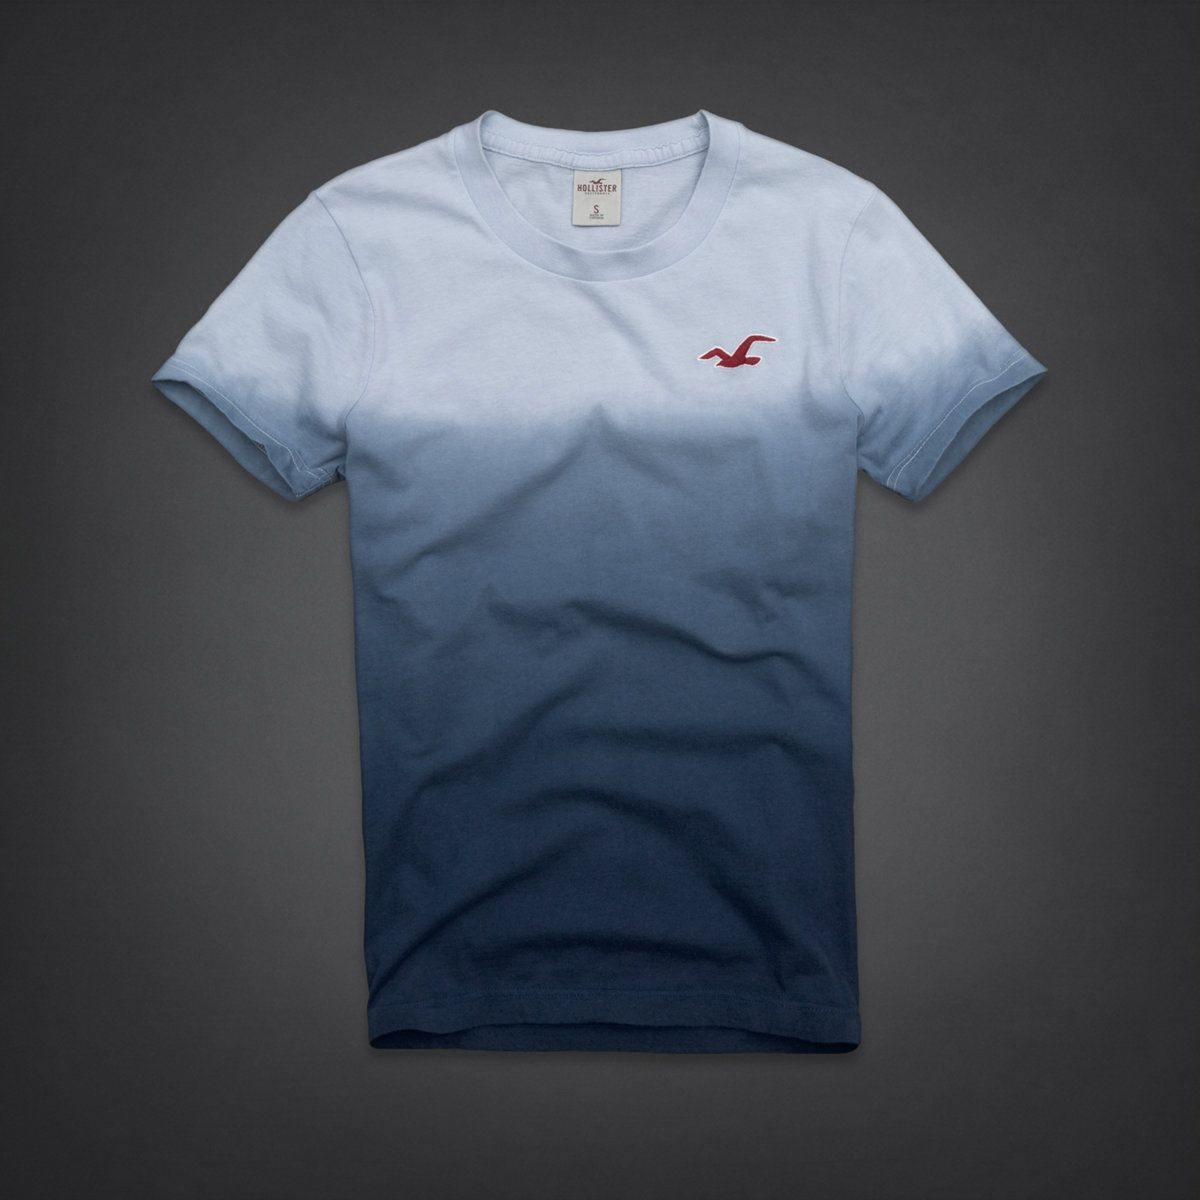 374ae5ec338f IMPERIAL BEACH T-SHIRT @ Hollister | Clothes in 2019 | Hollister ...